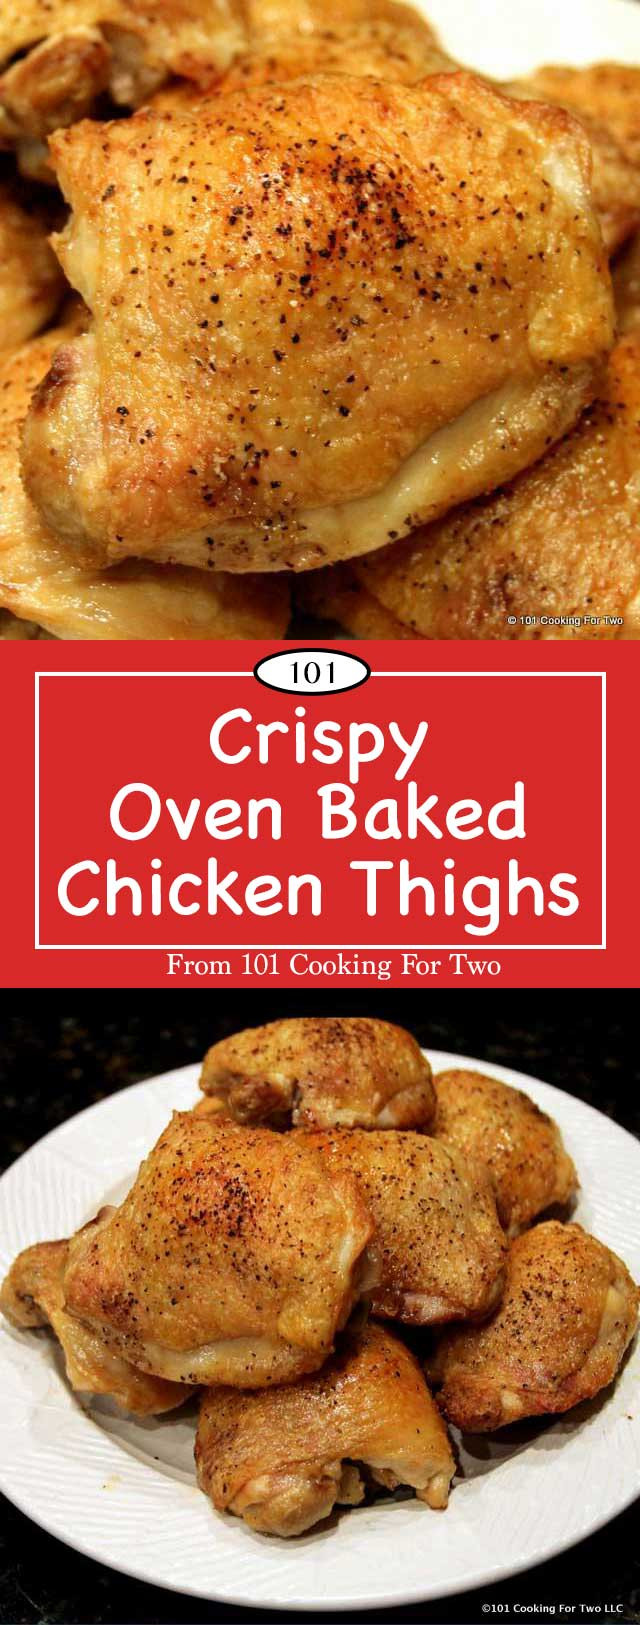 Oven Baked Chicken Thighs  Crispy Oven Baked Chicken Thighs